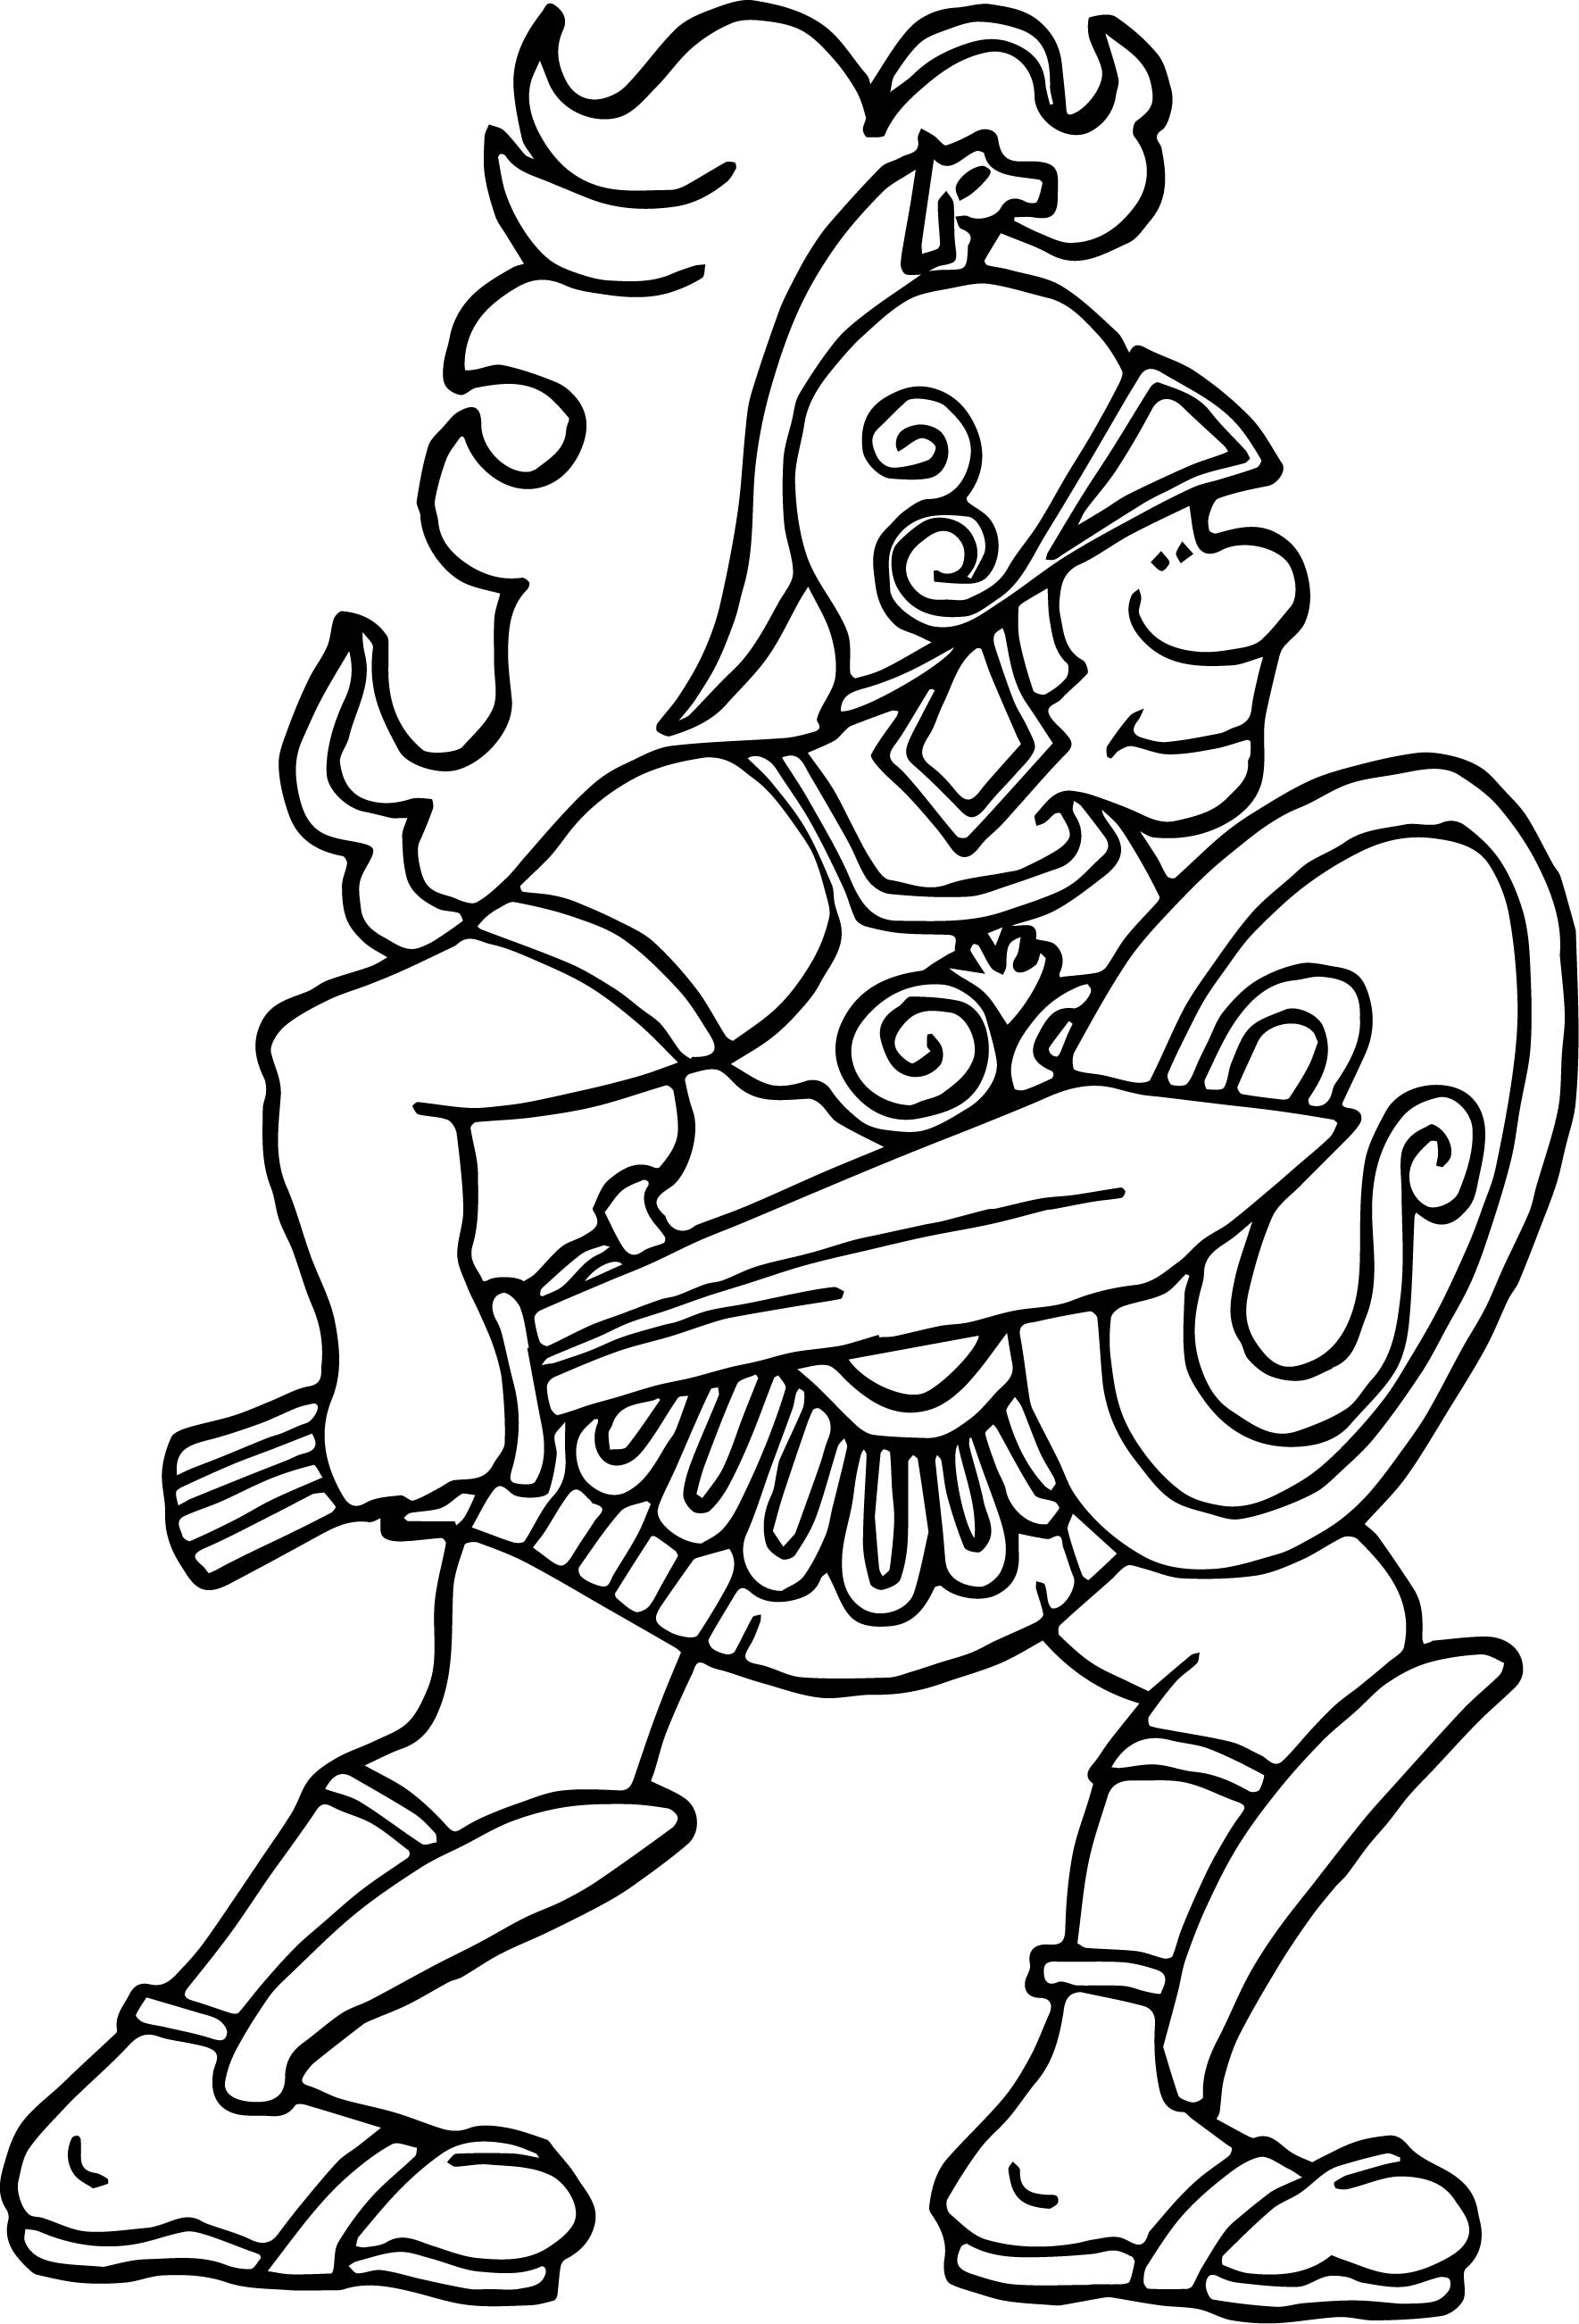 alexander the great coloring pages - photo#15